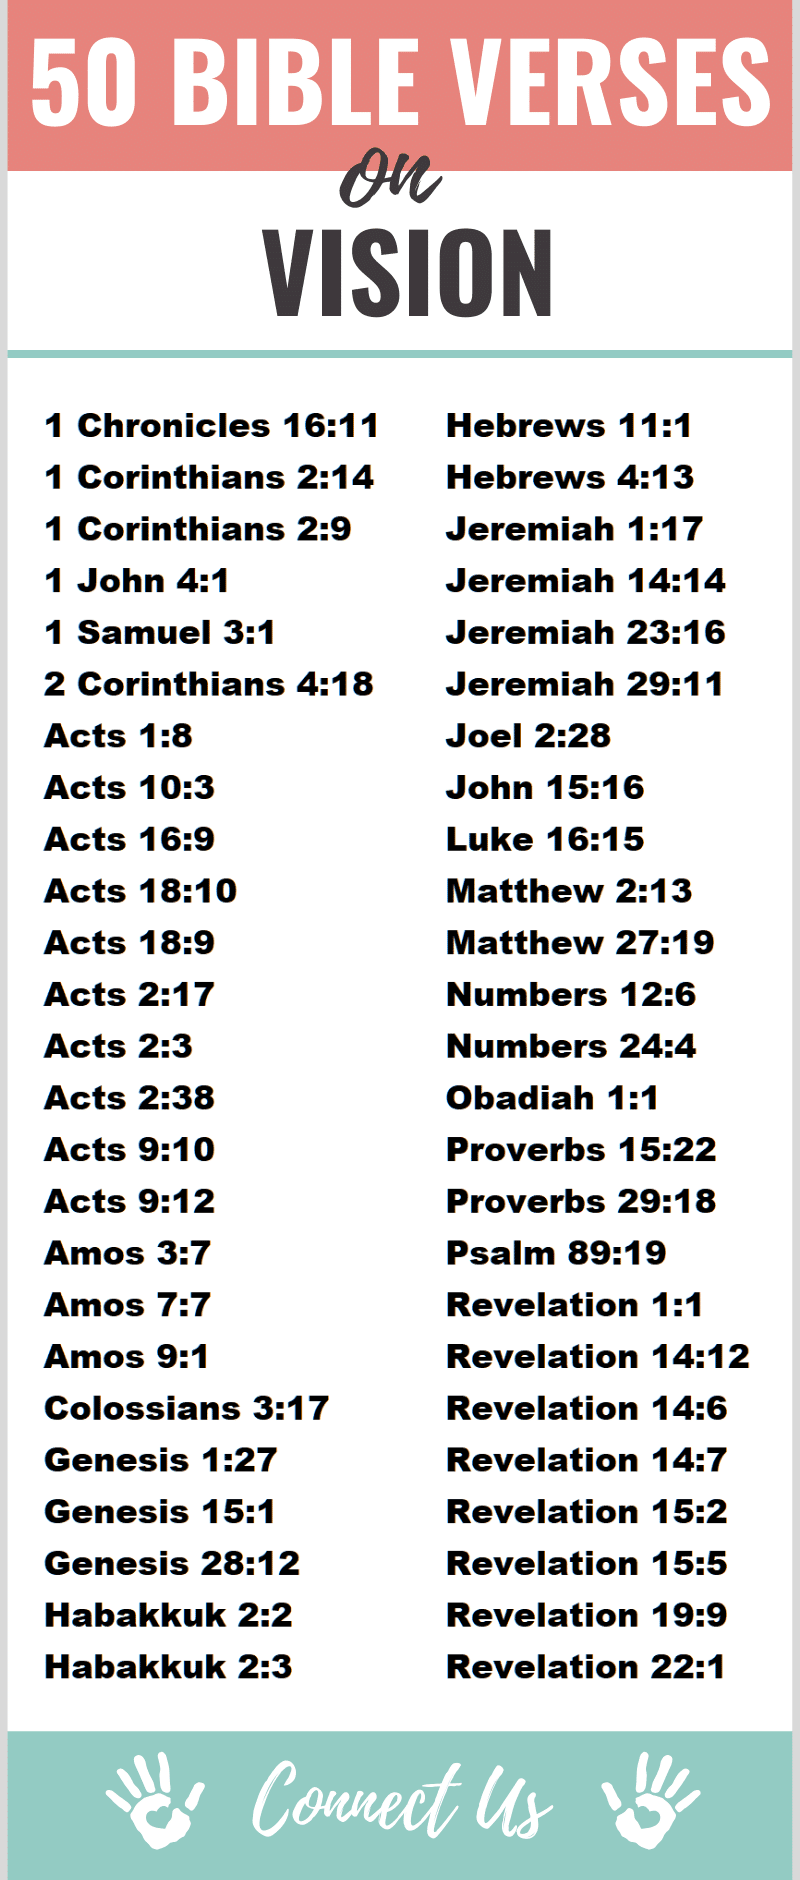 Bible Verses on Vision